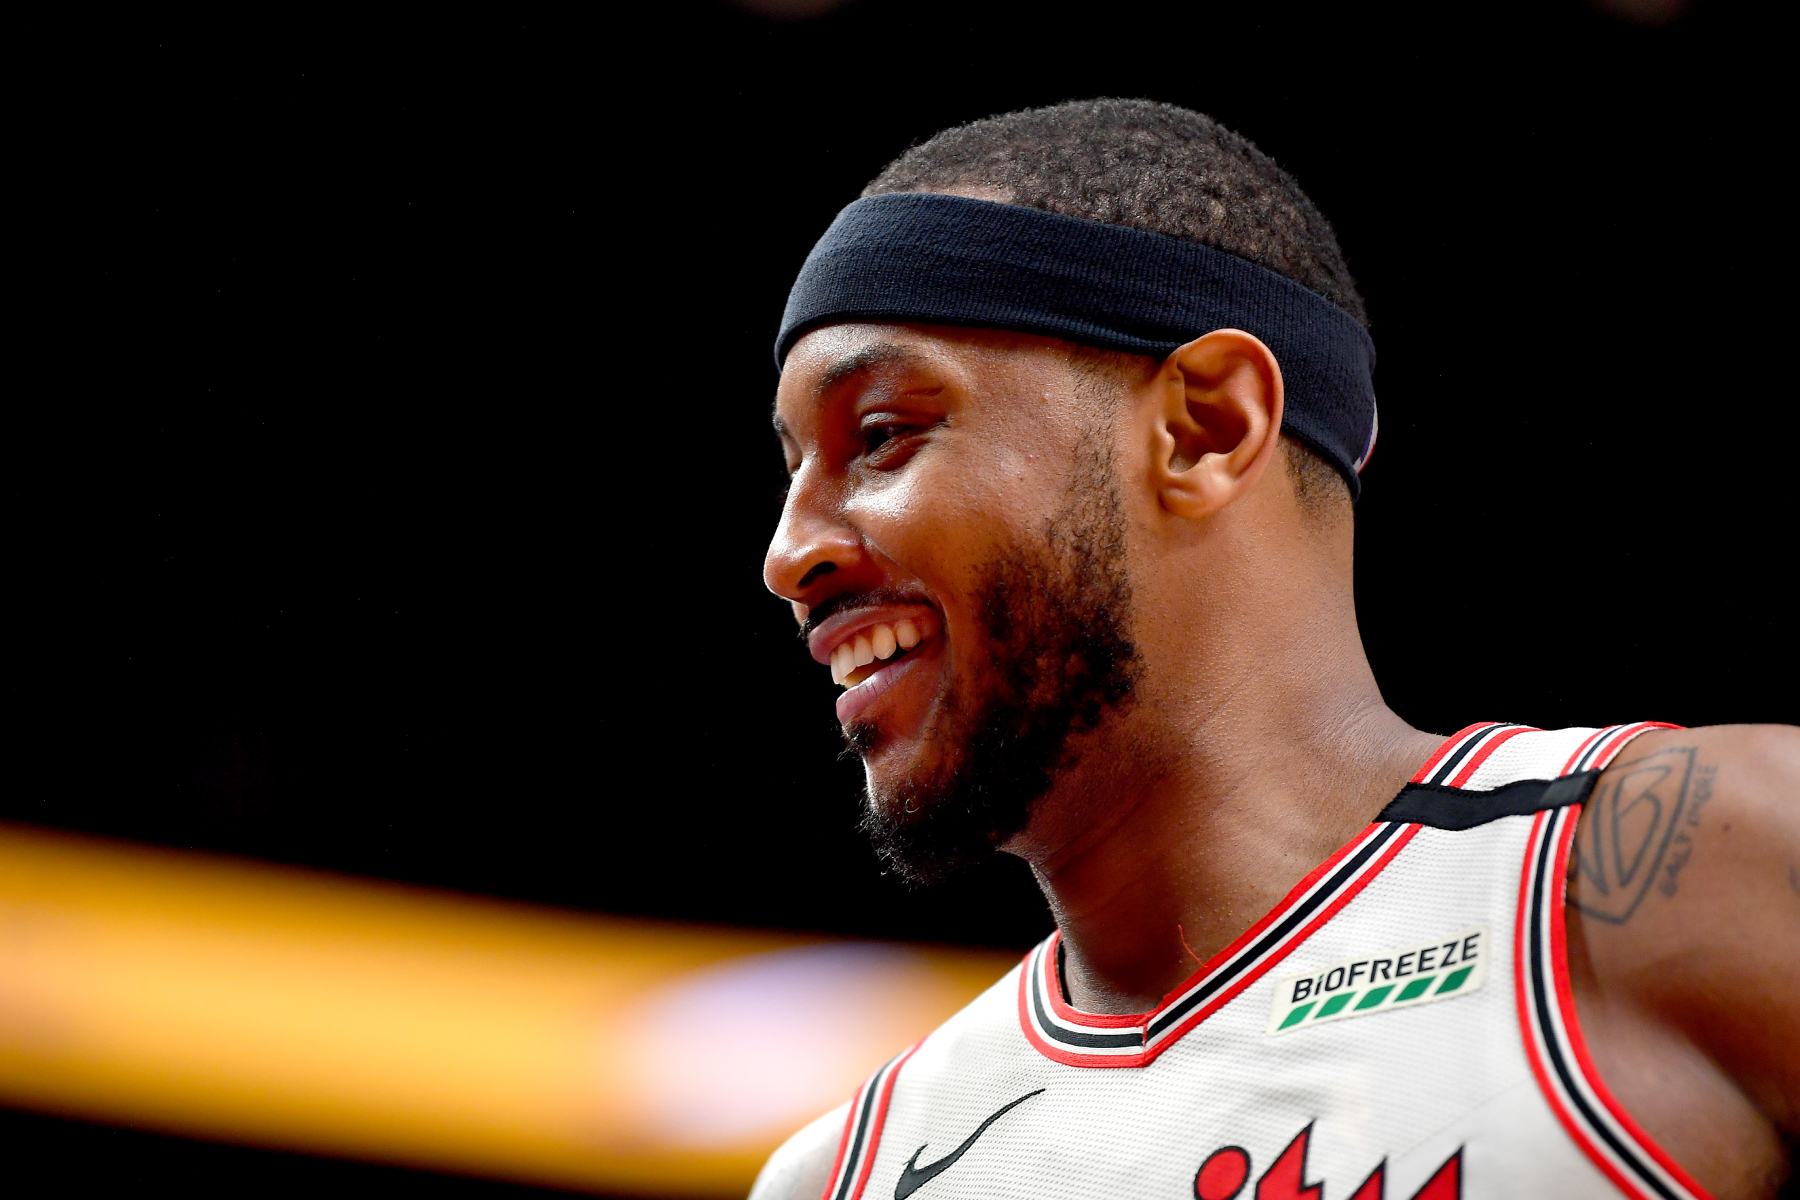 Carmelo Anthony played really well for the Portland Trail Blazers this season. So, what's next for Anthony in his NBA career?